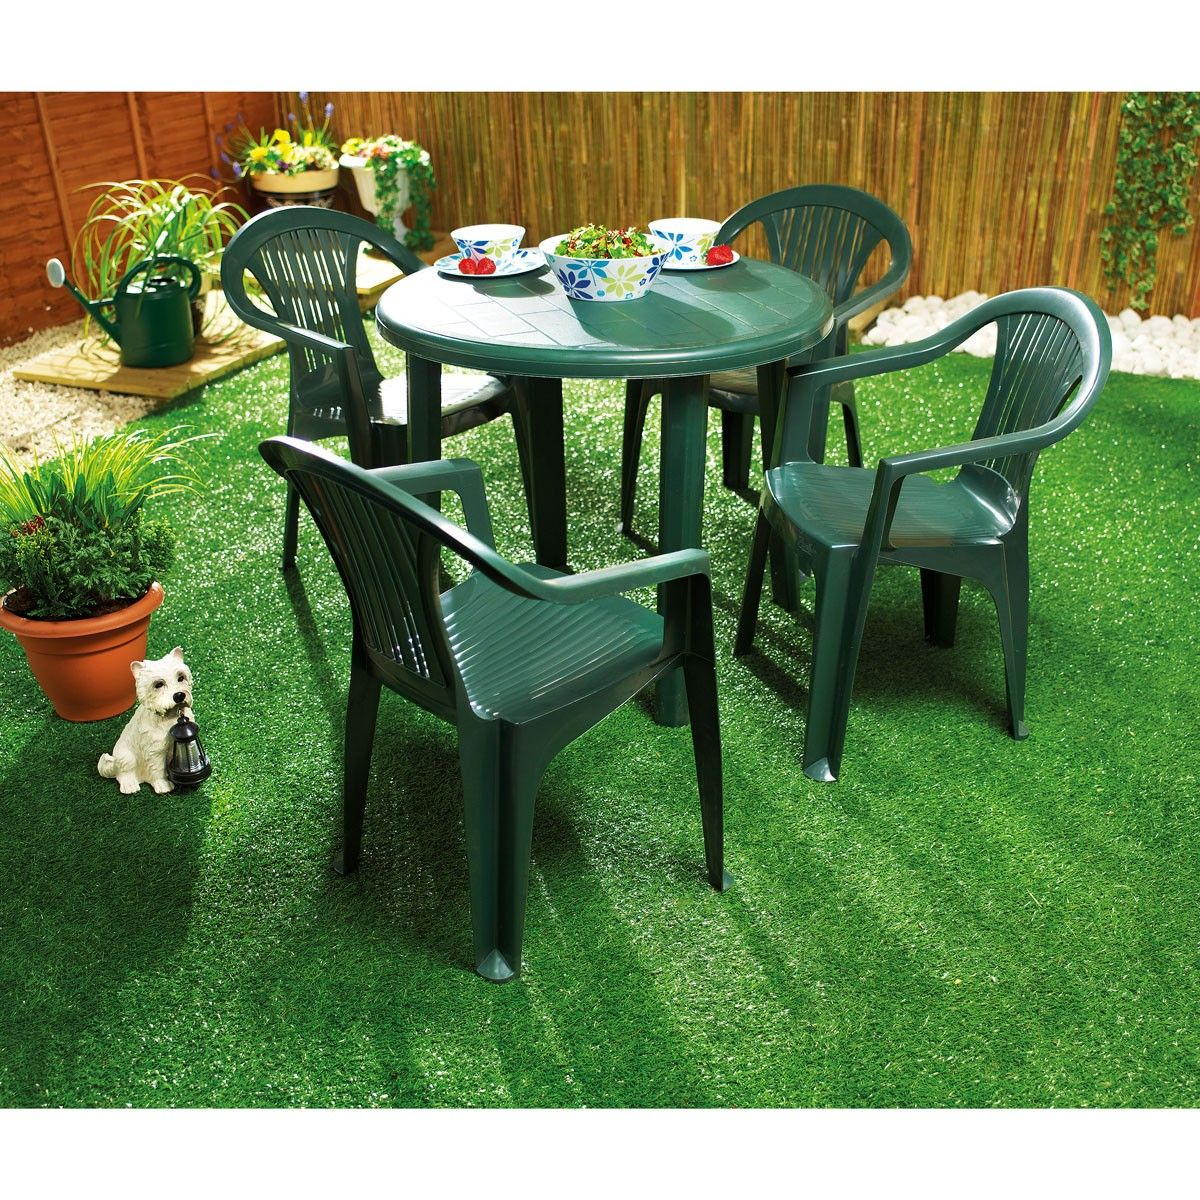 Garden Table And Chairs Green Plastic Garden Table For Home Use Backyard